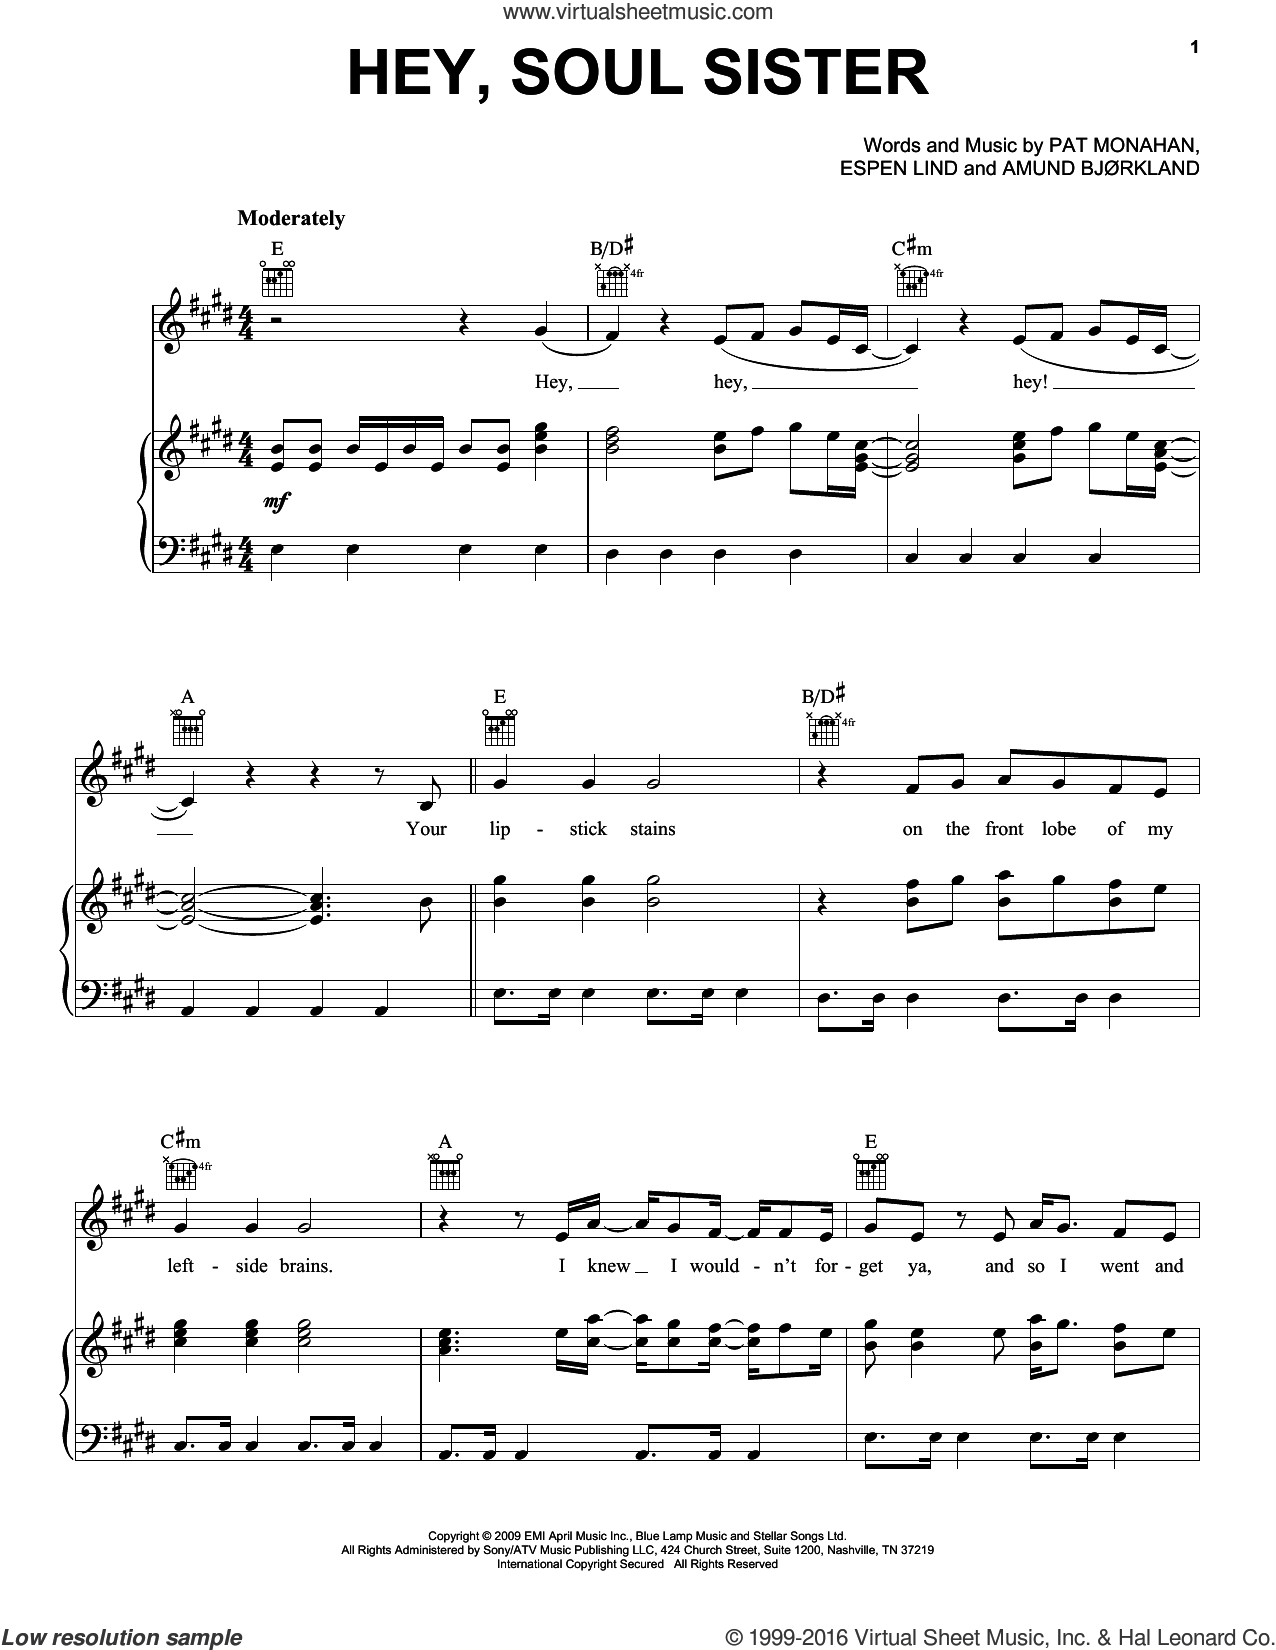 Hey, Soul Sister sheet music for voice, piano or guitar by Train and Pat Monahan, intermediate voice, piano or guitar. Score Image Preview.